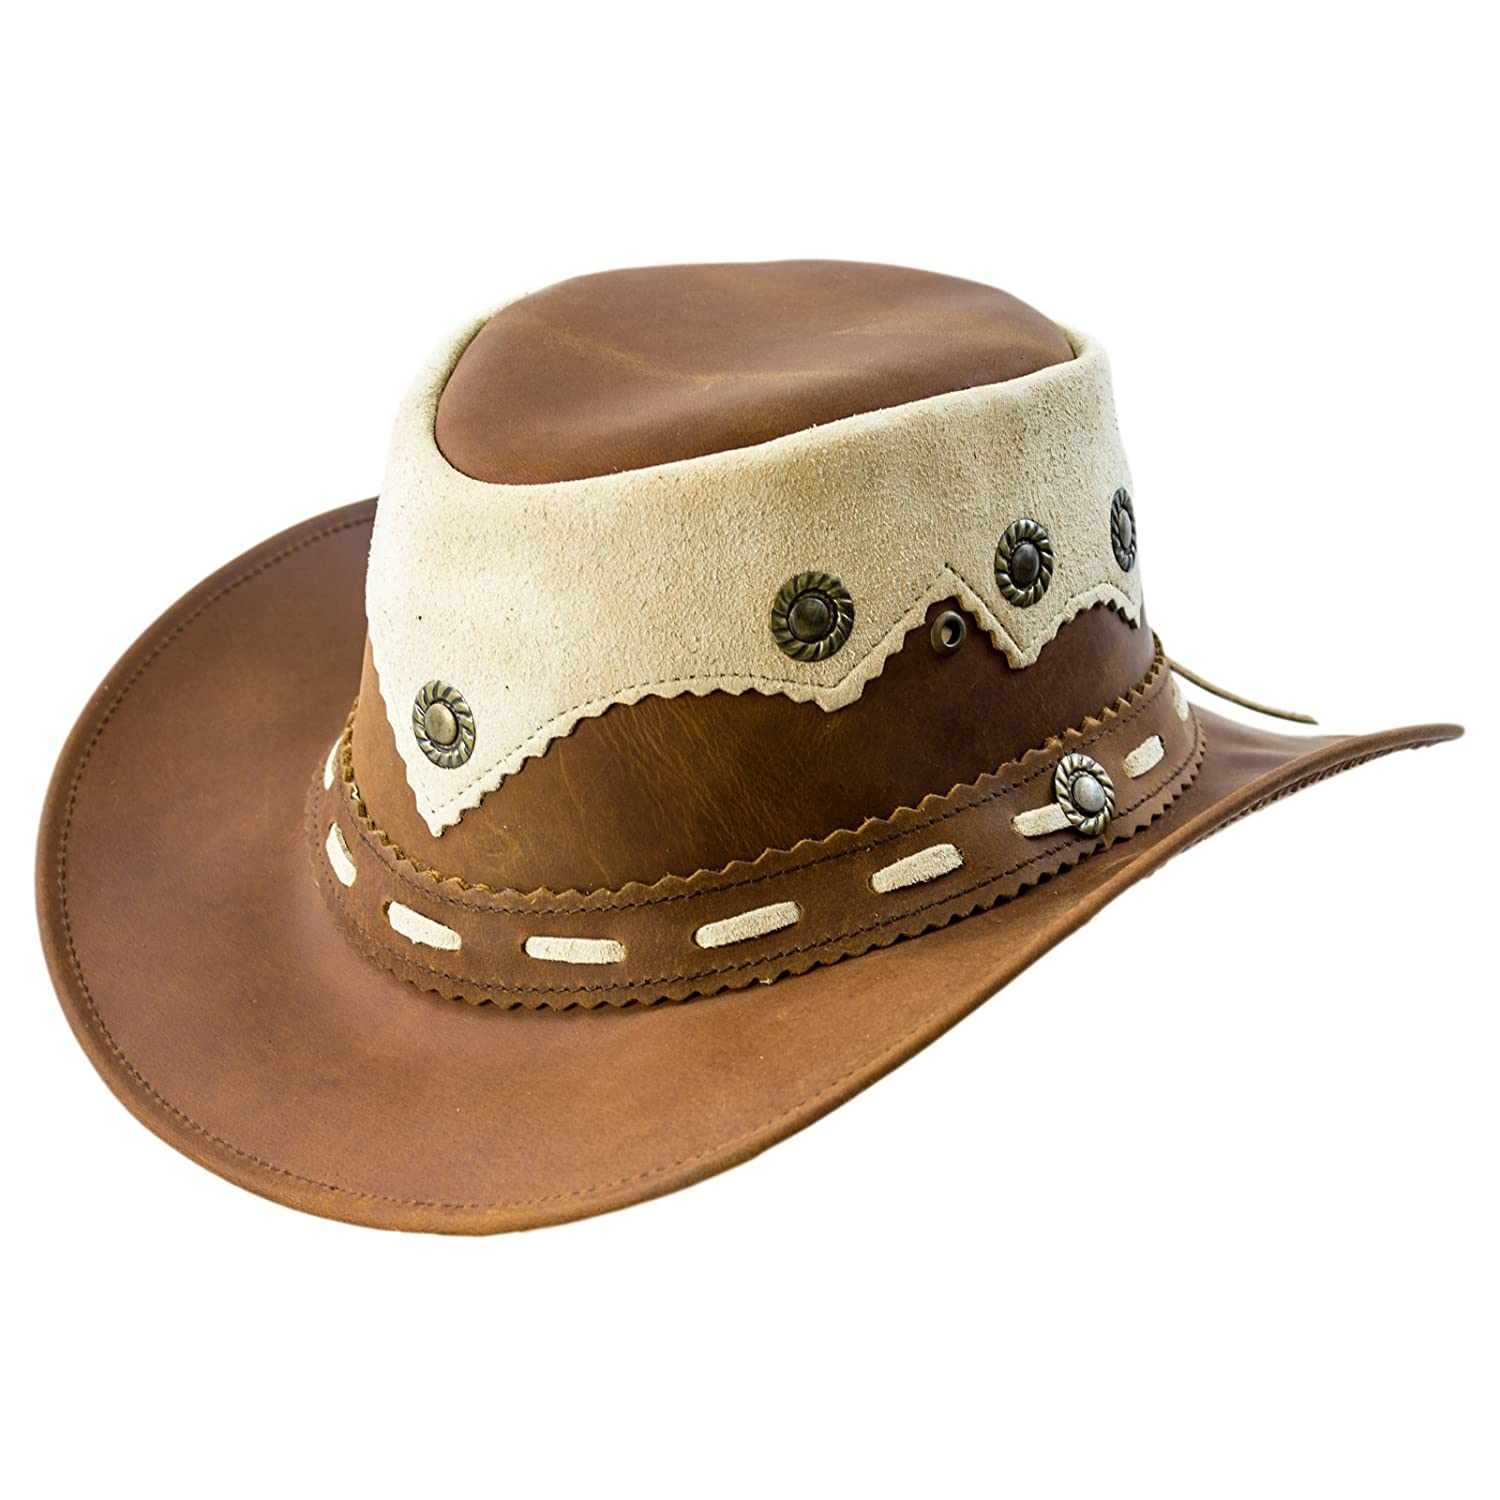 Lesa Collection Real Oily Leather Cowboy Western Style Leather Hat